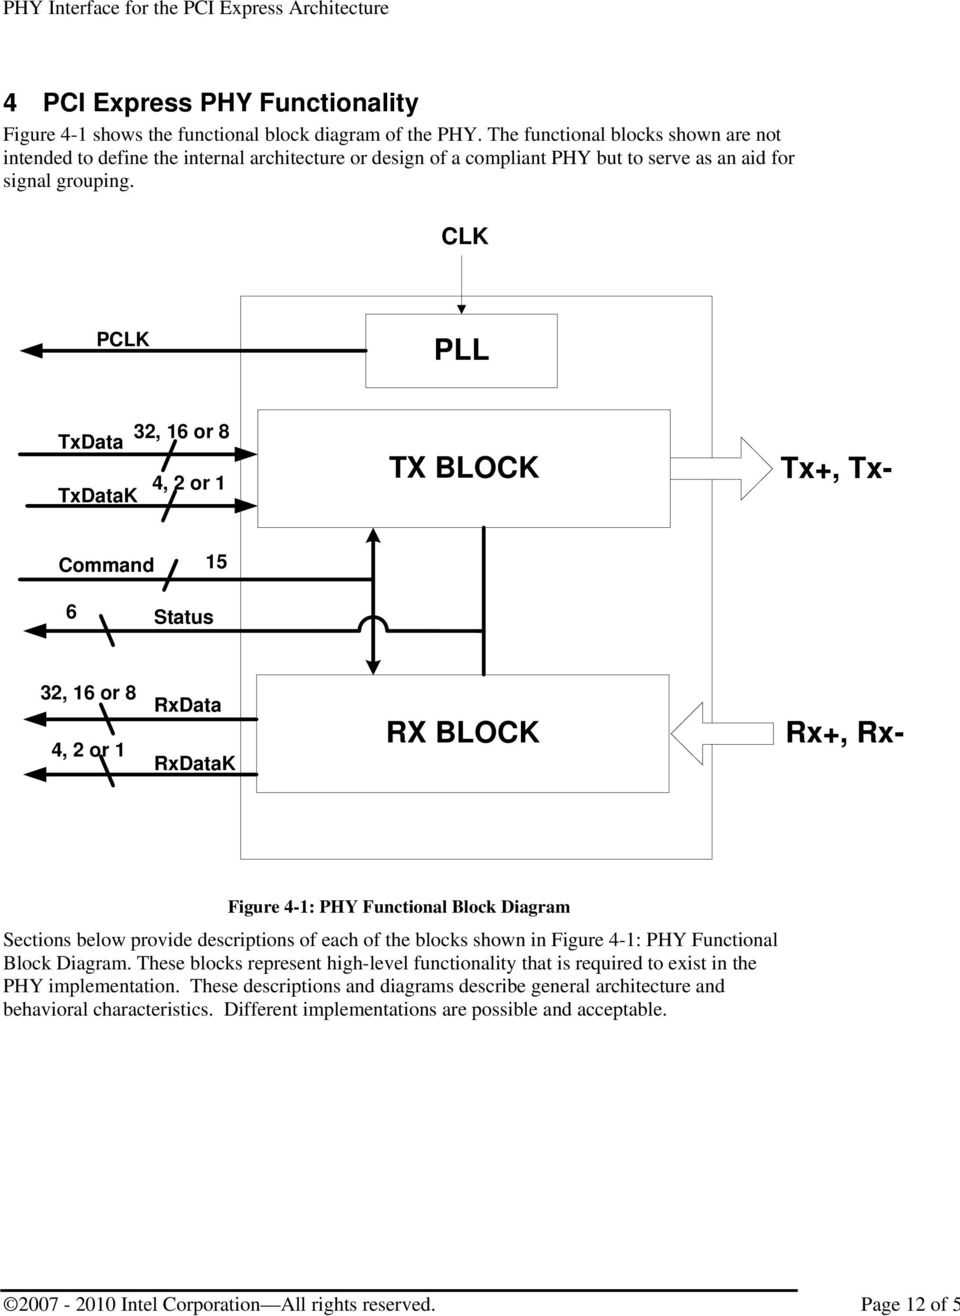 Phy Interface For The Pci Express Architecture Pdf Block Diagram In Clk Pll 32 16 Or 8 Txdata 4 2 1 Txdatak Tx